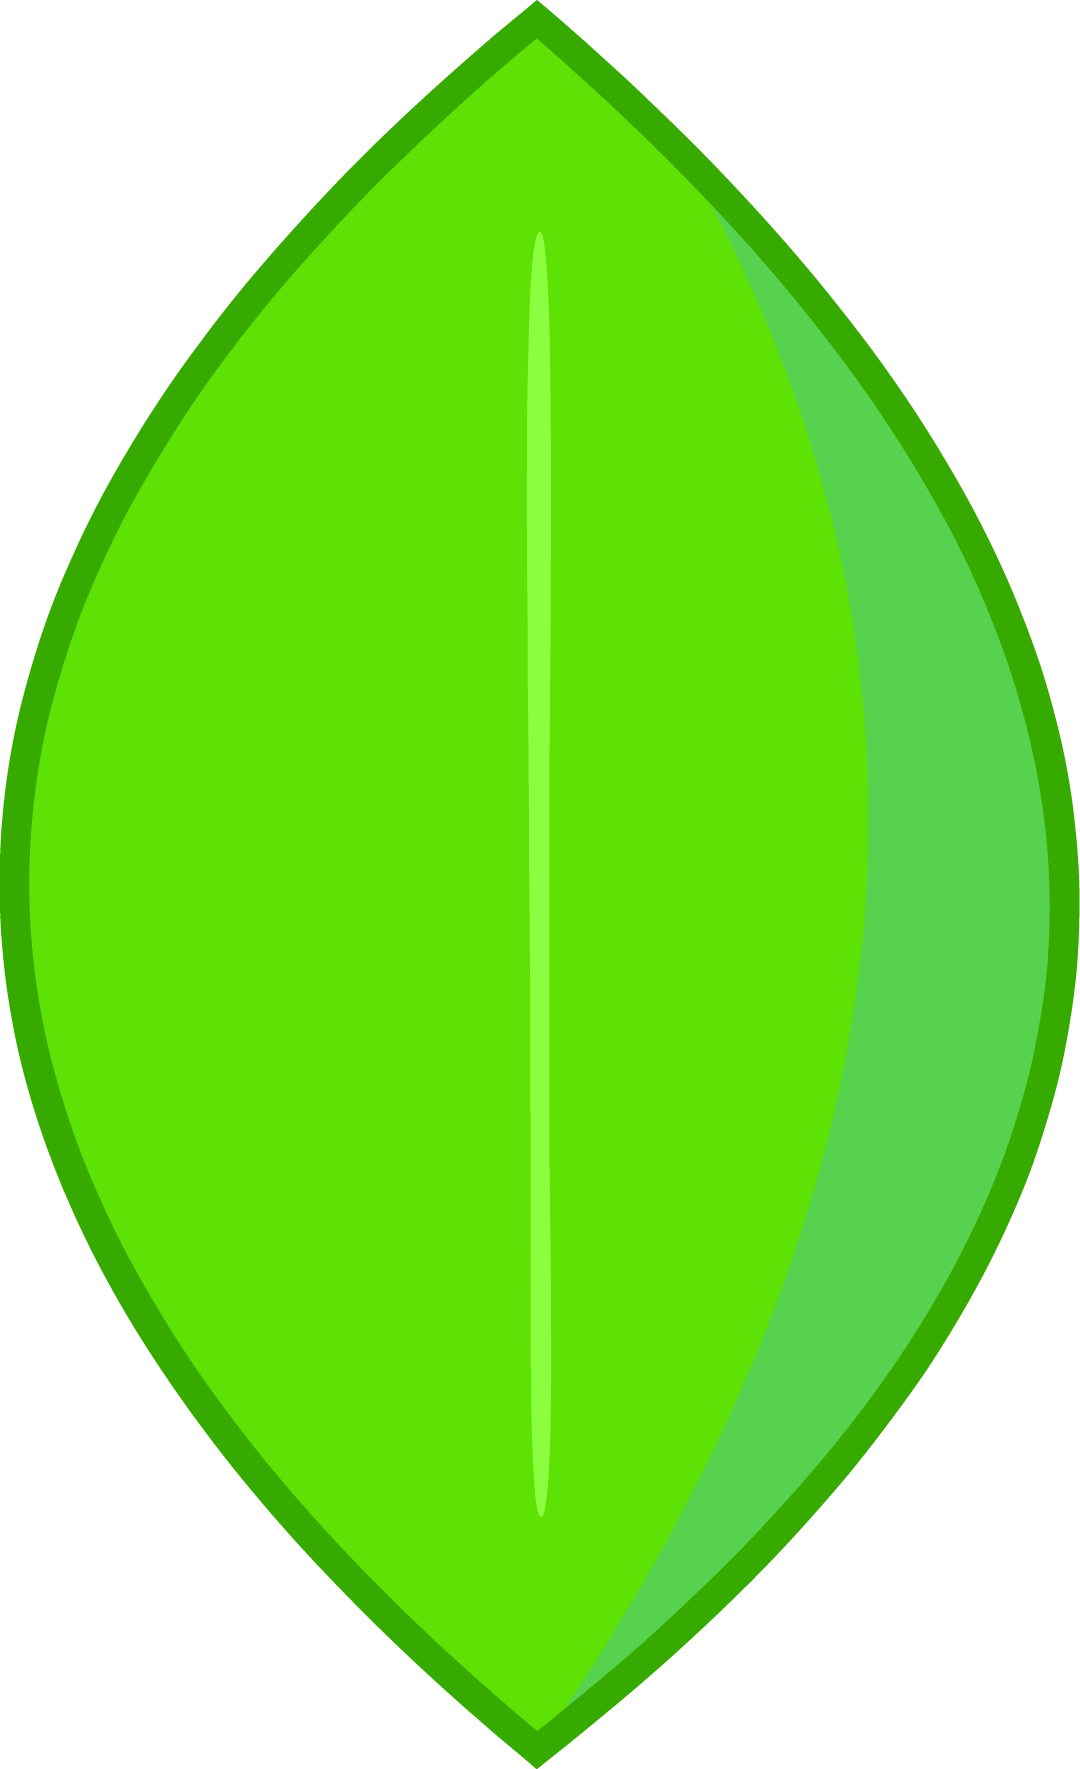 Leaf clipart leafy greens. Image icon png battle